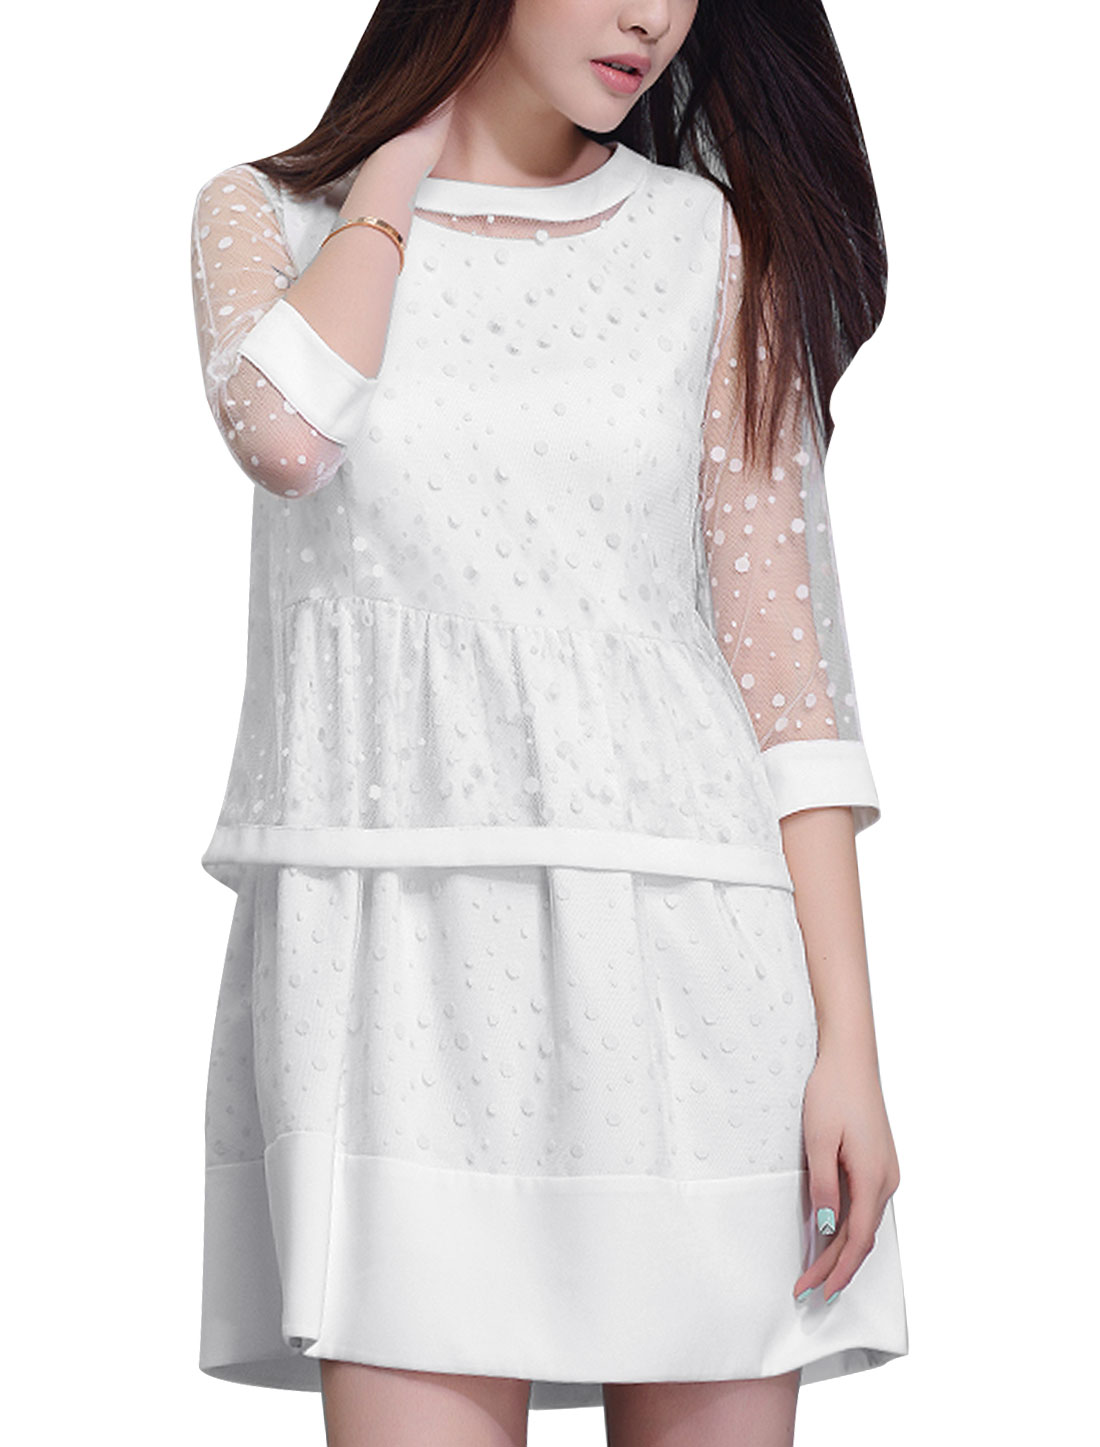 Sleeveless Hidden Side Zipper Dress w Button Loop Closure White S Lace Top for Lady